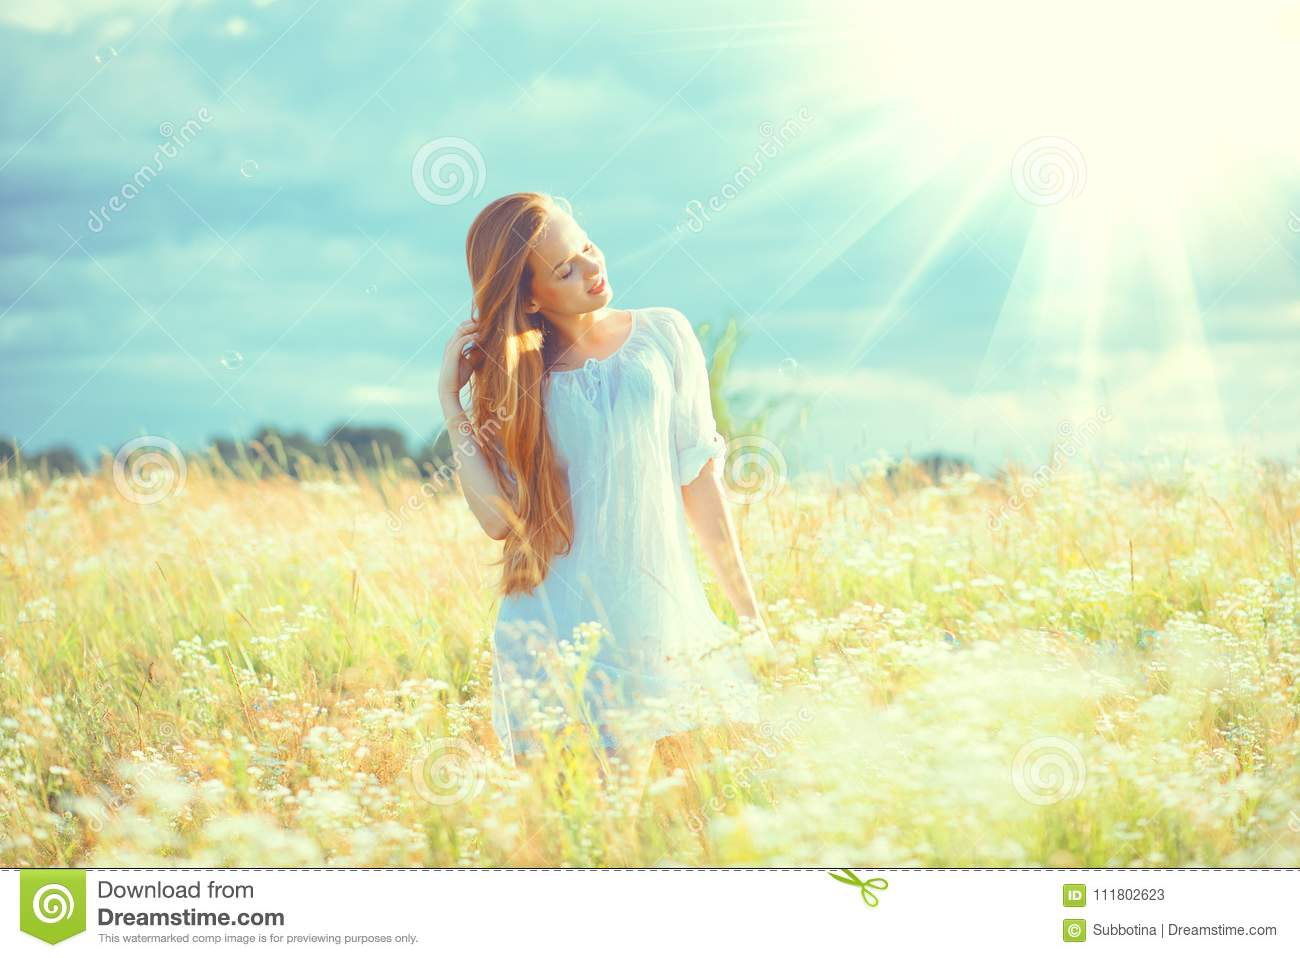 Beauty girl outdoors enjoying nature. Beautiful teenage model girl with healthy long hair in white dress